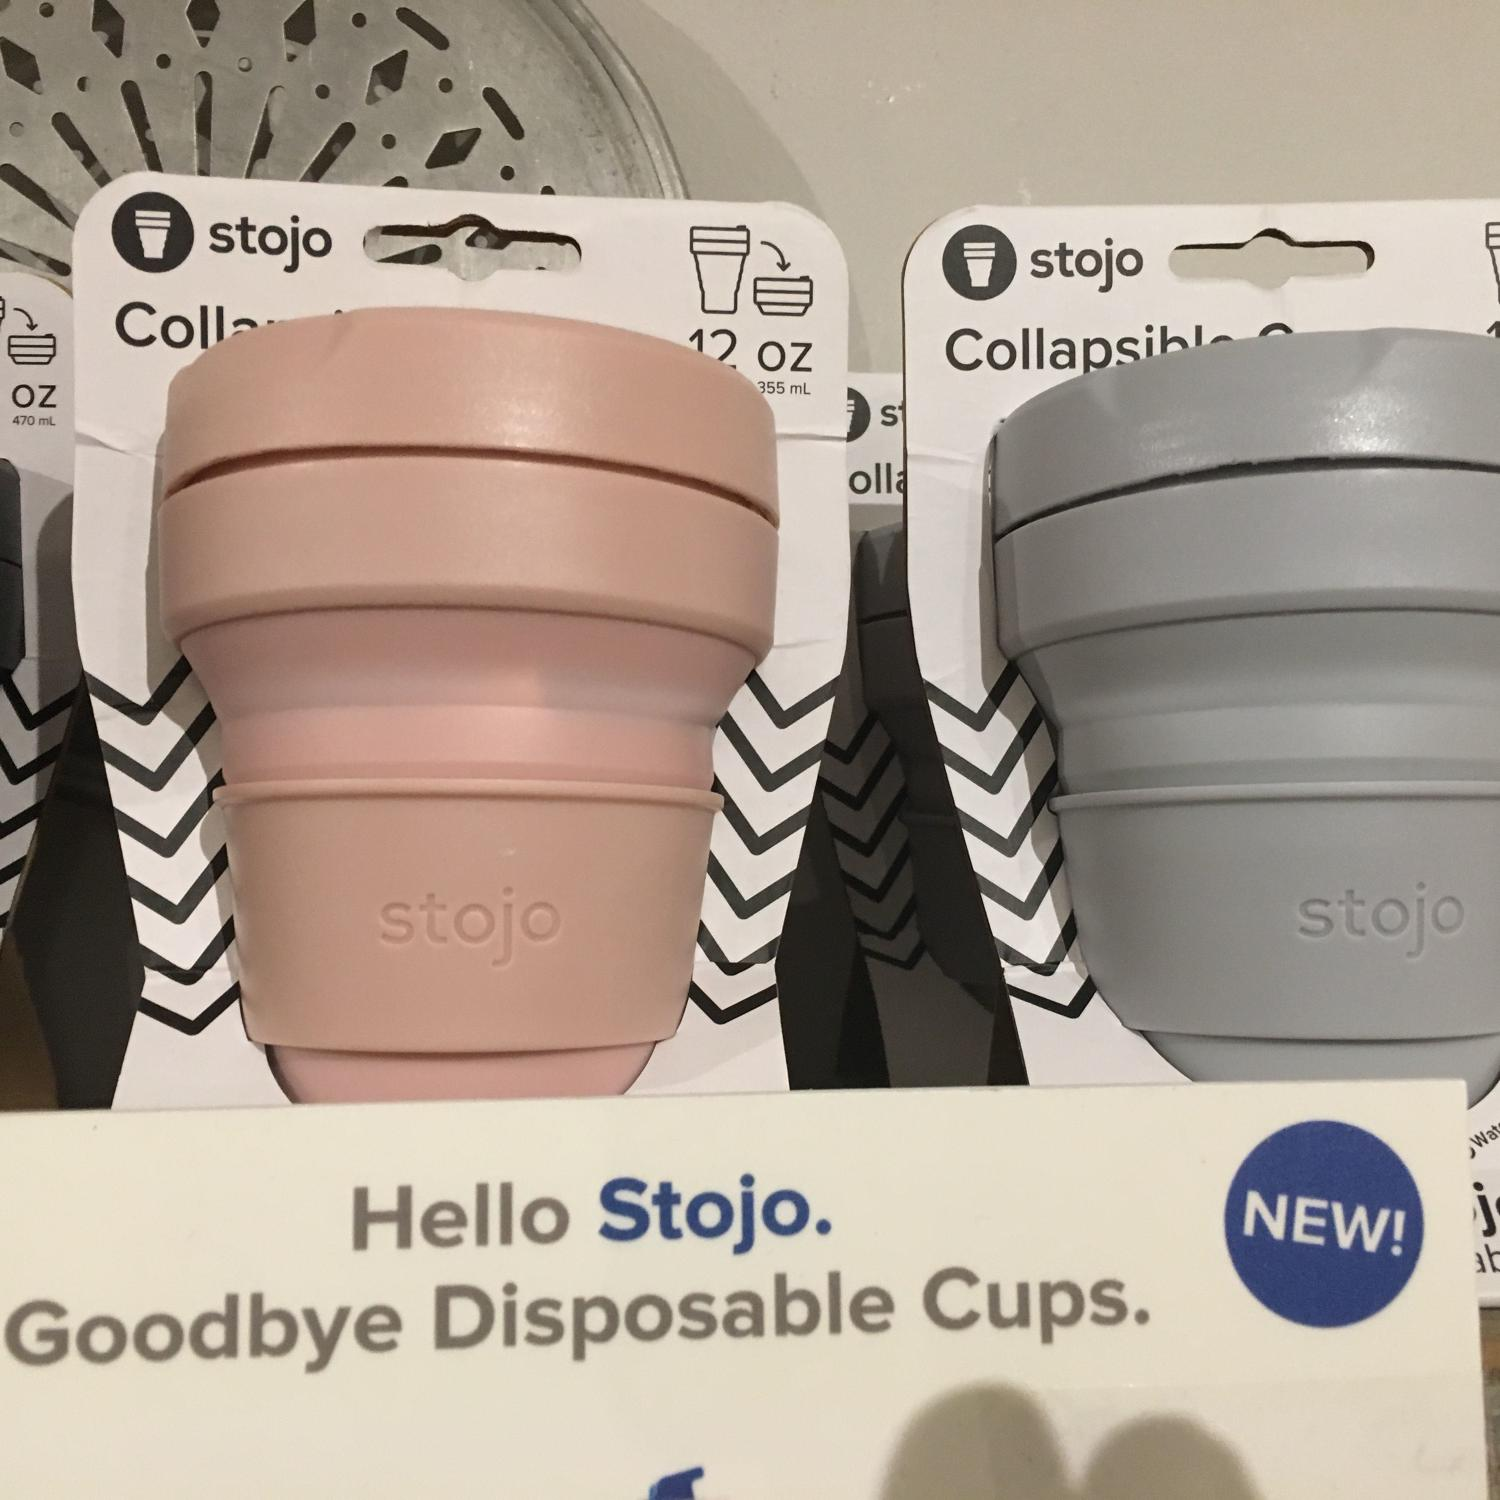 Re-usable and collapsible cups